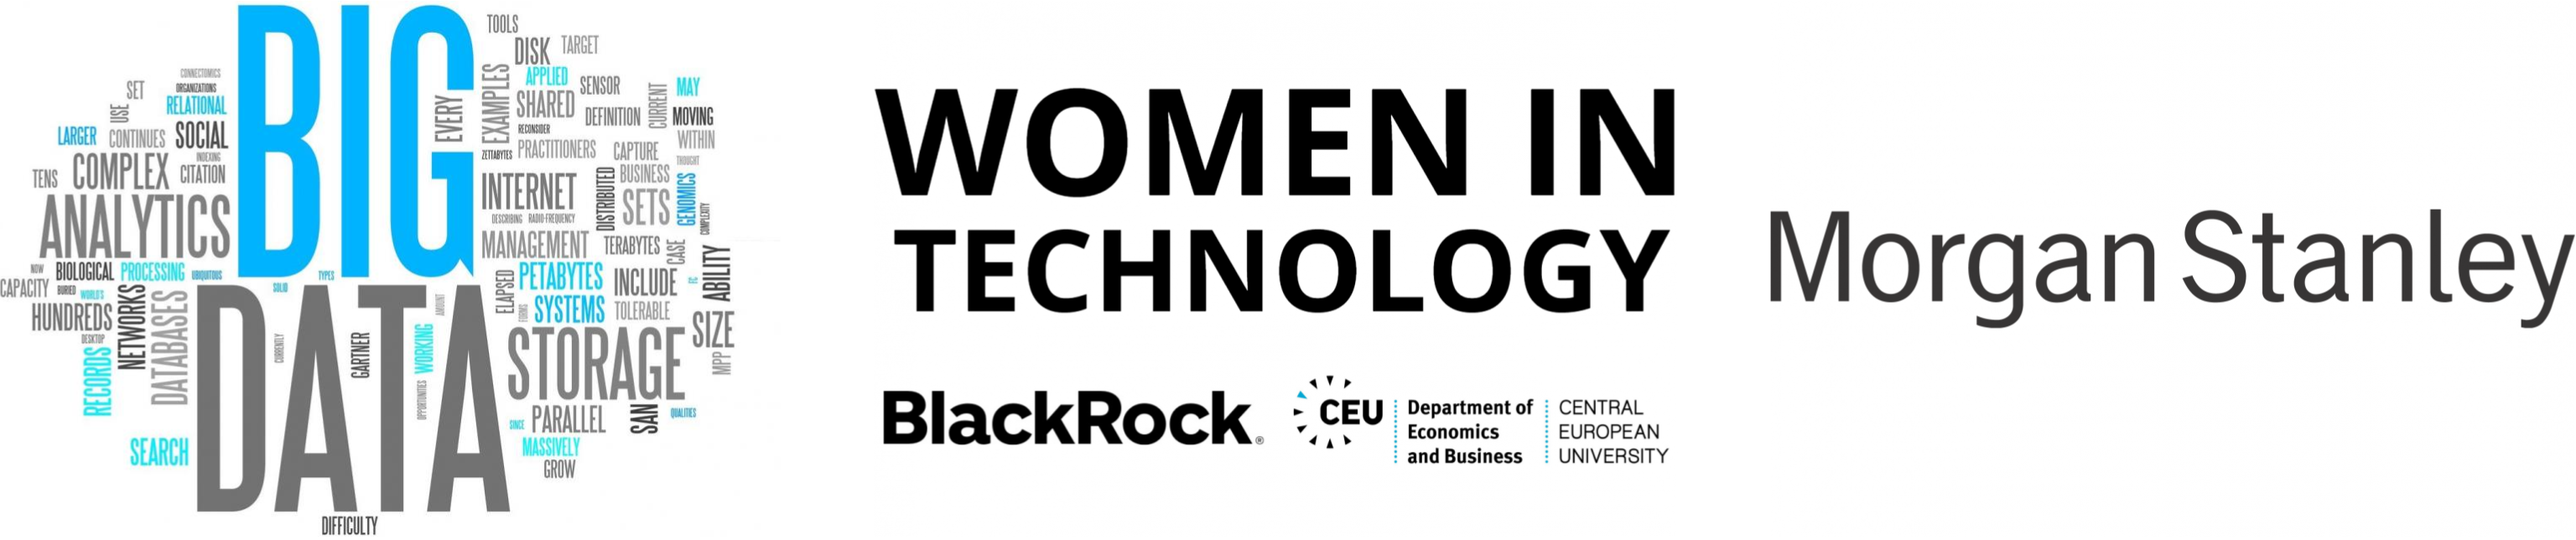 CEU Scholarships Future of Big Data Women in Technology BlackRock Morgan Stanley MS in Business Analytics MS in Finance